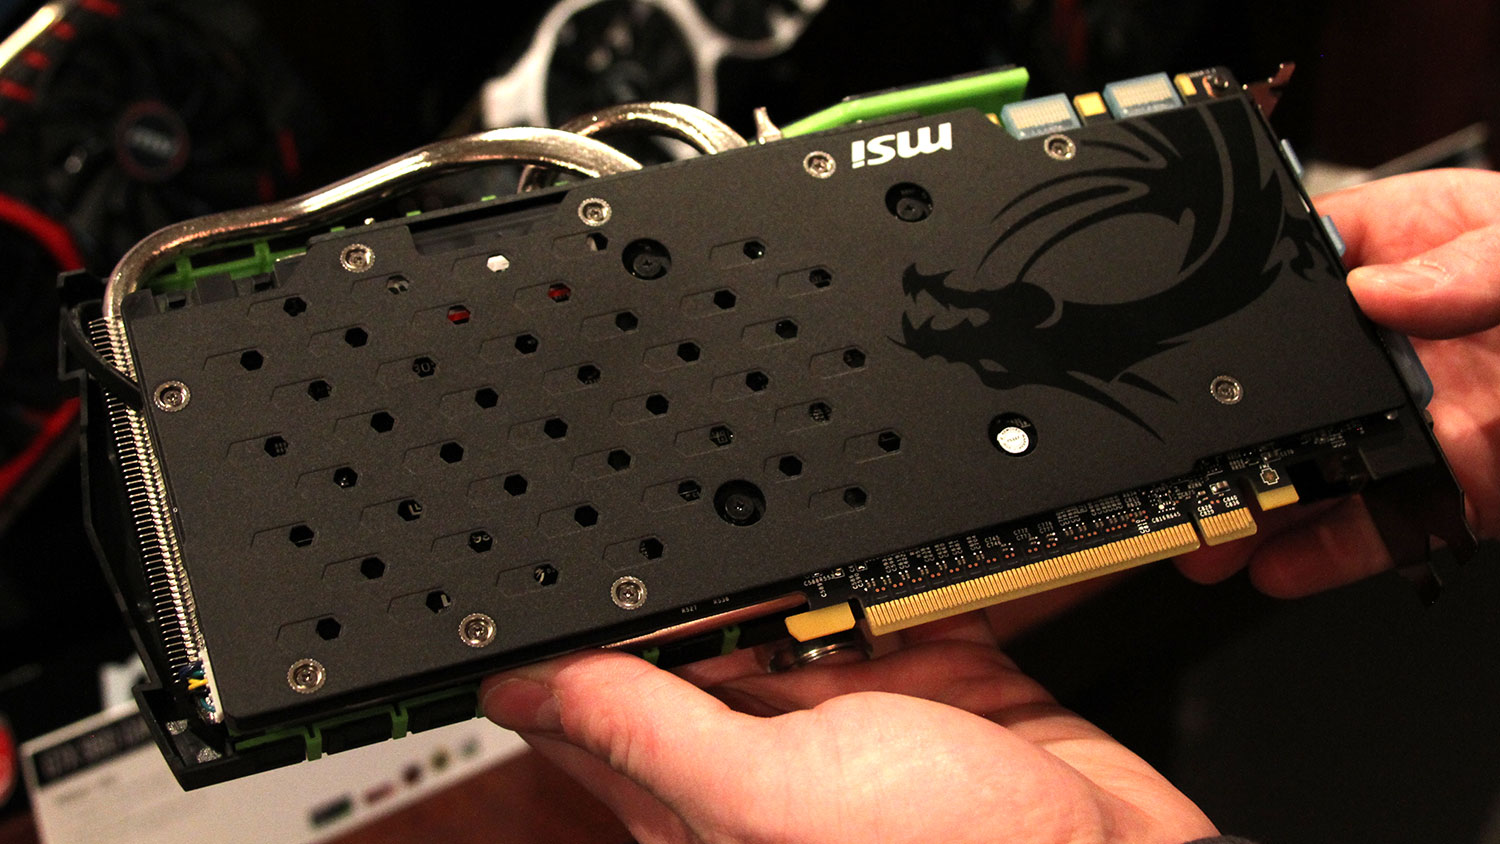 MSI shows two new GTX 970 graphics cards at CES 2015